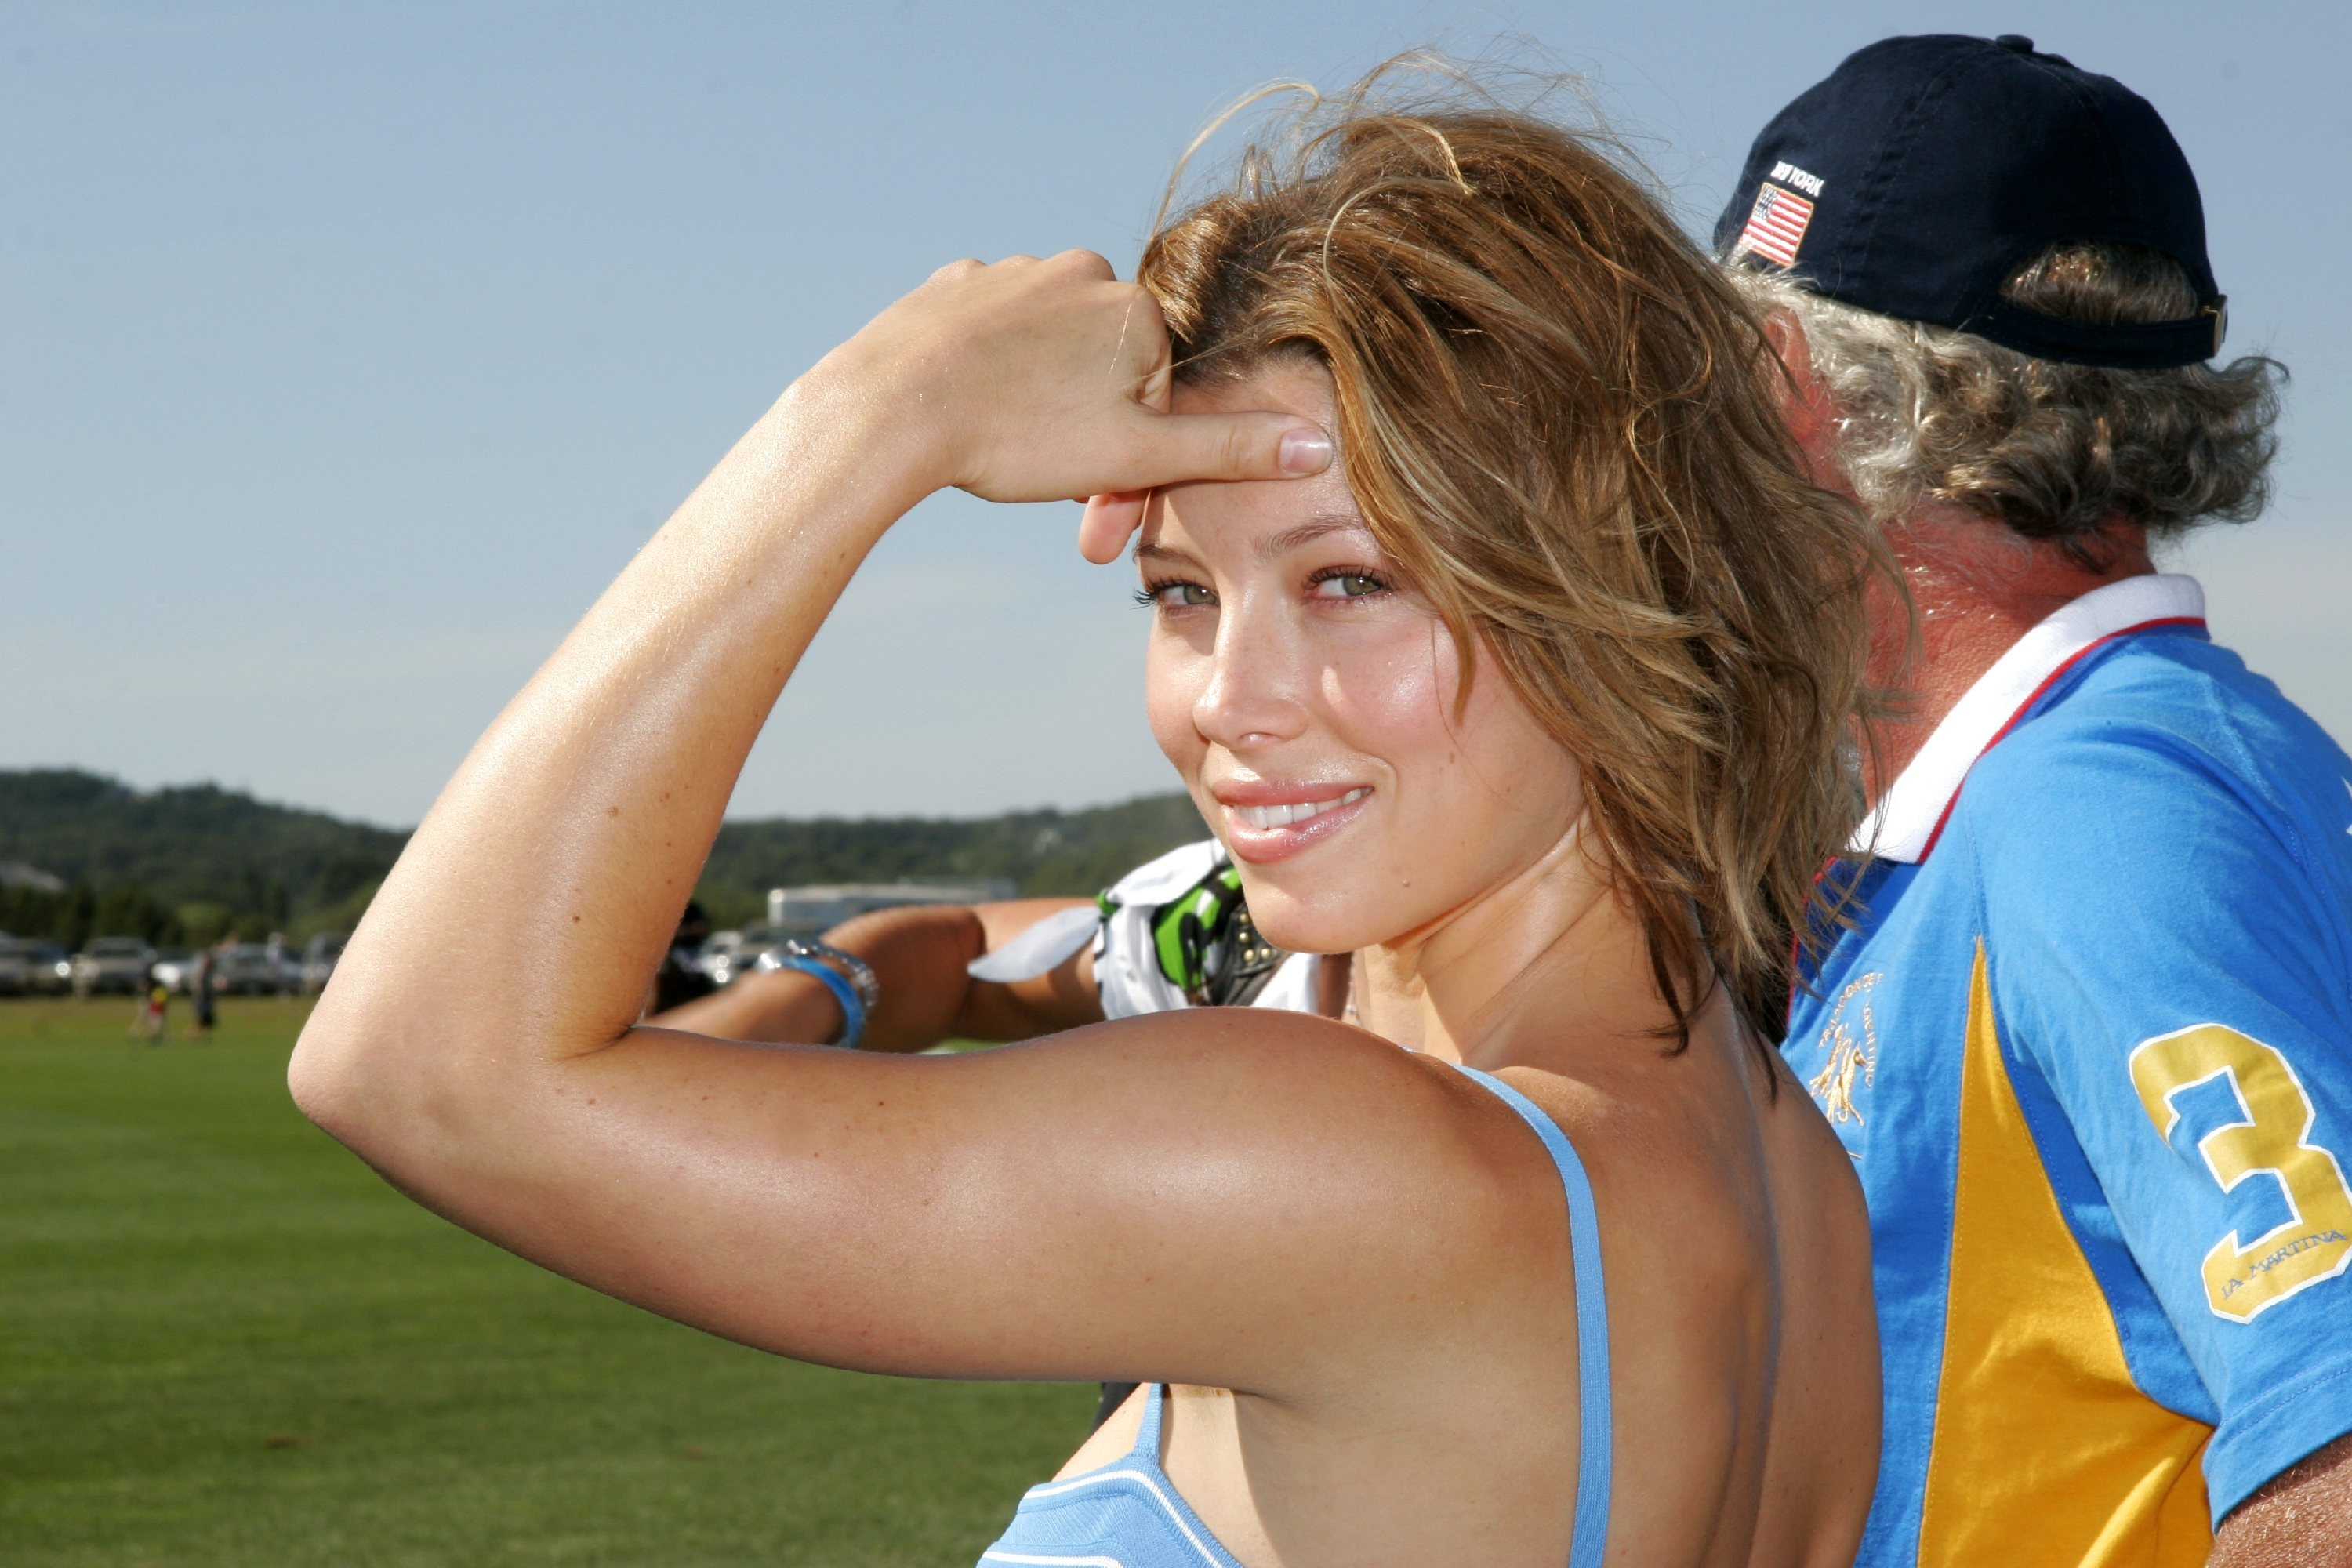 woman Actress Jessica Biel HD Wallpaper